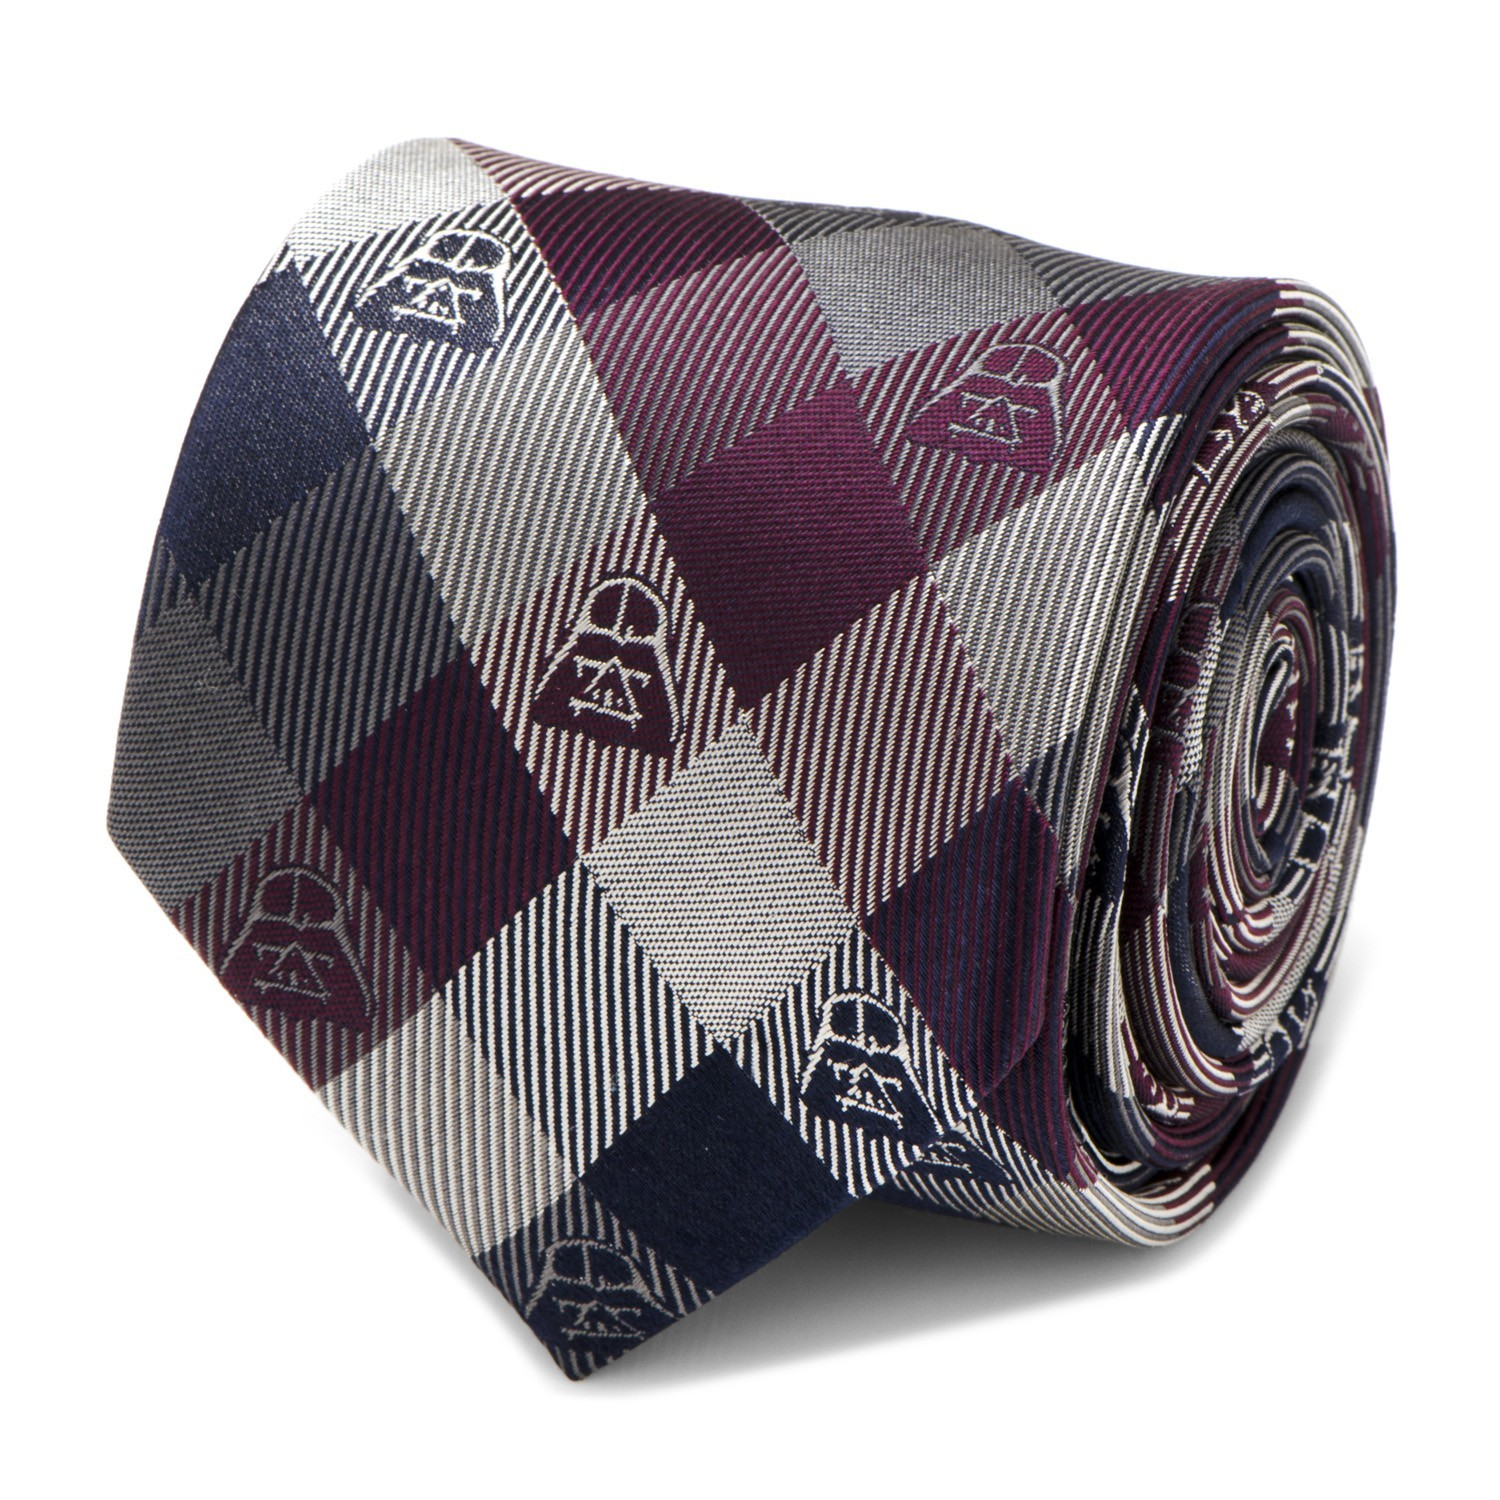 Darth Vader (Plum) - Modern Plaid Tie image